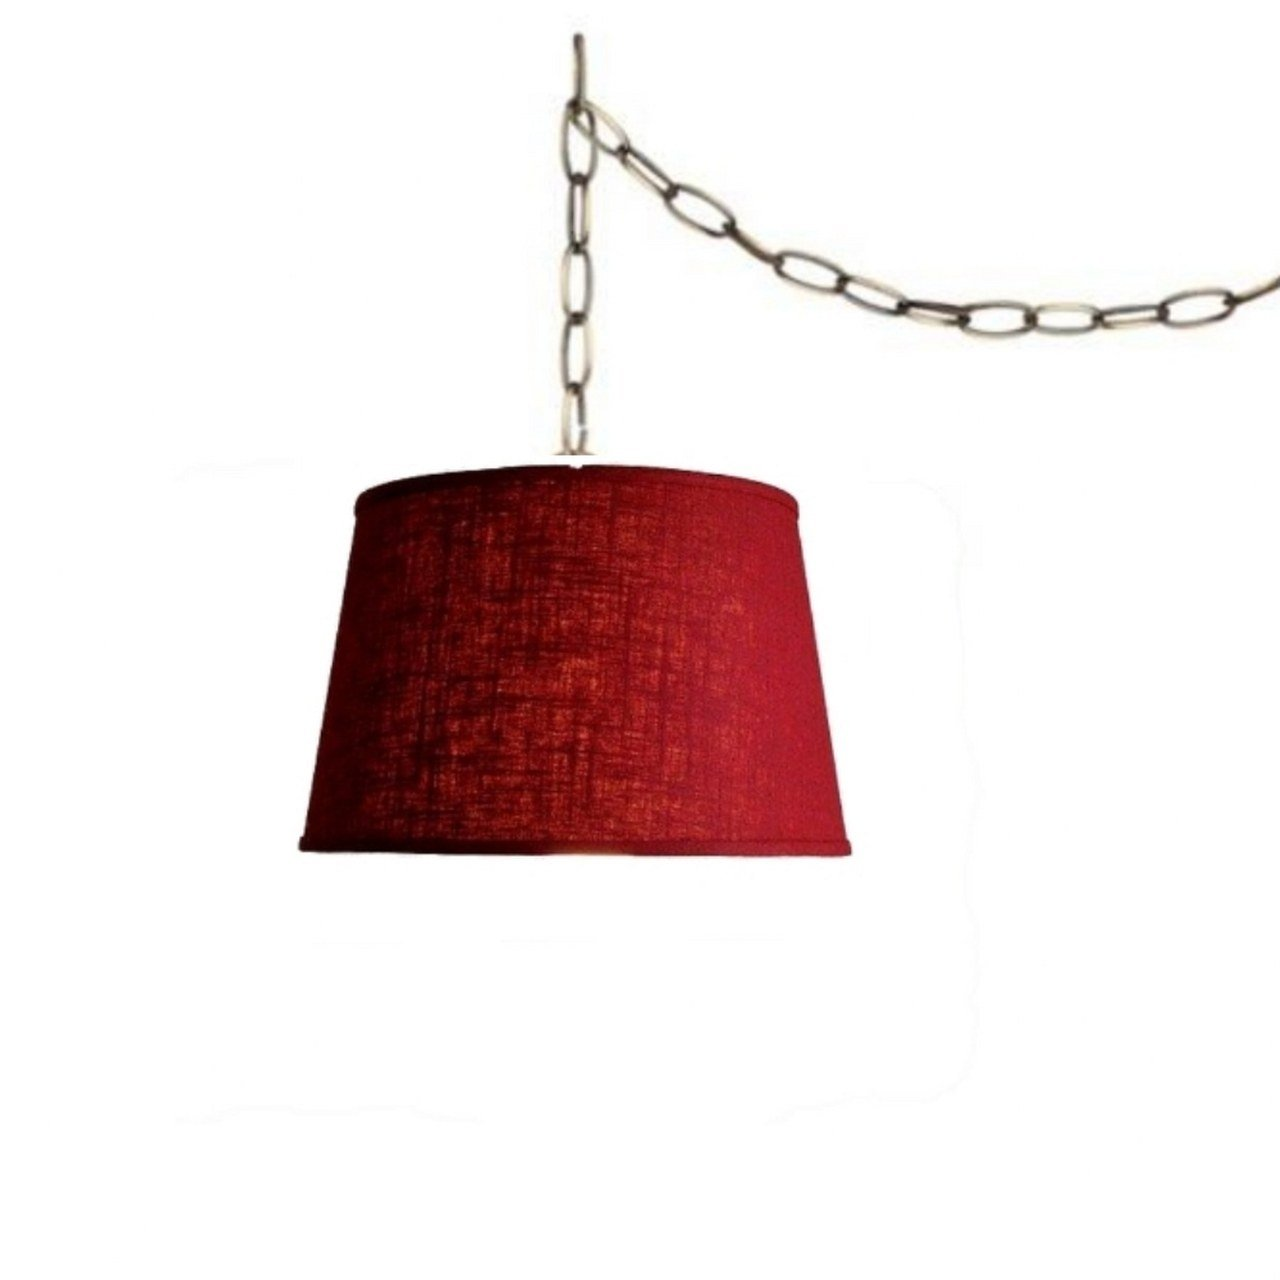 Upgradelights Red Portable Pendant Lamp Swag Light Linen Swag Lamp Plug In by Upgradelights